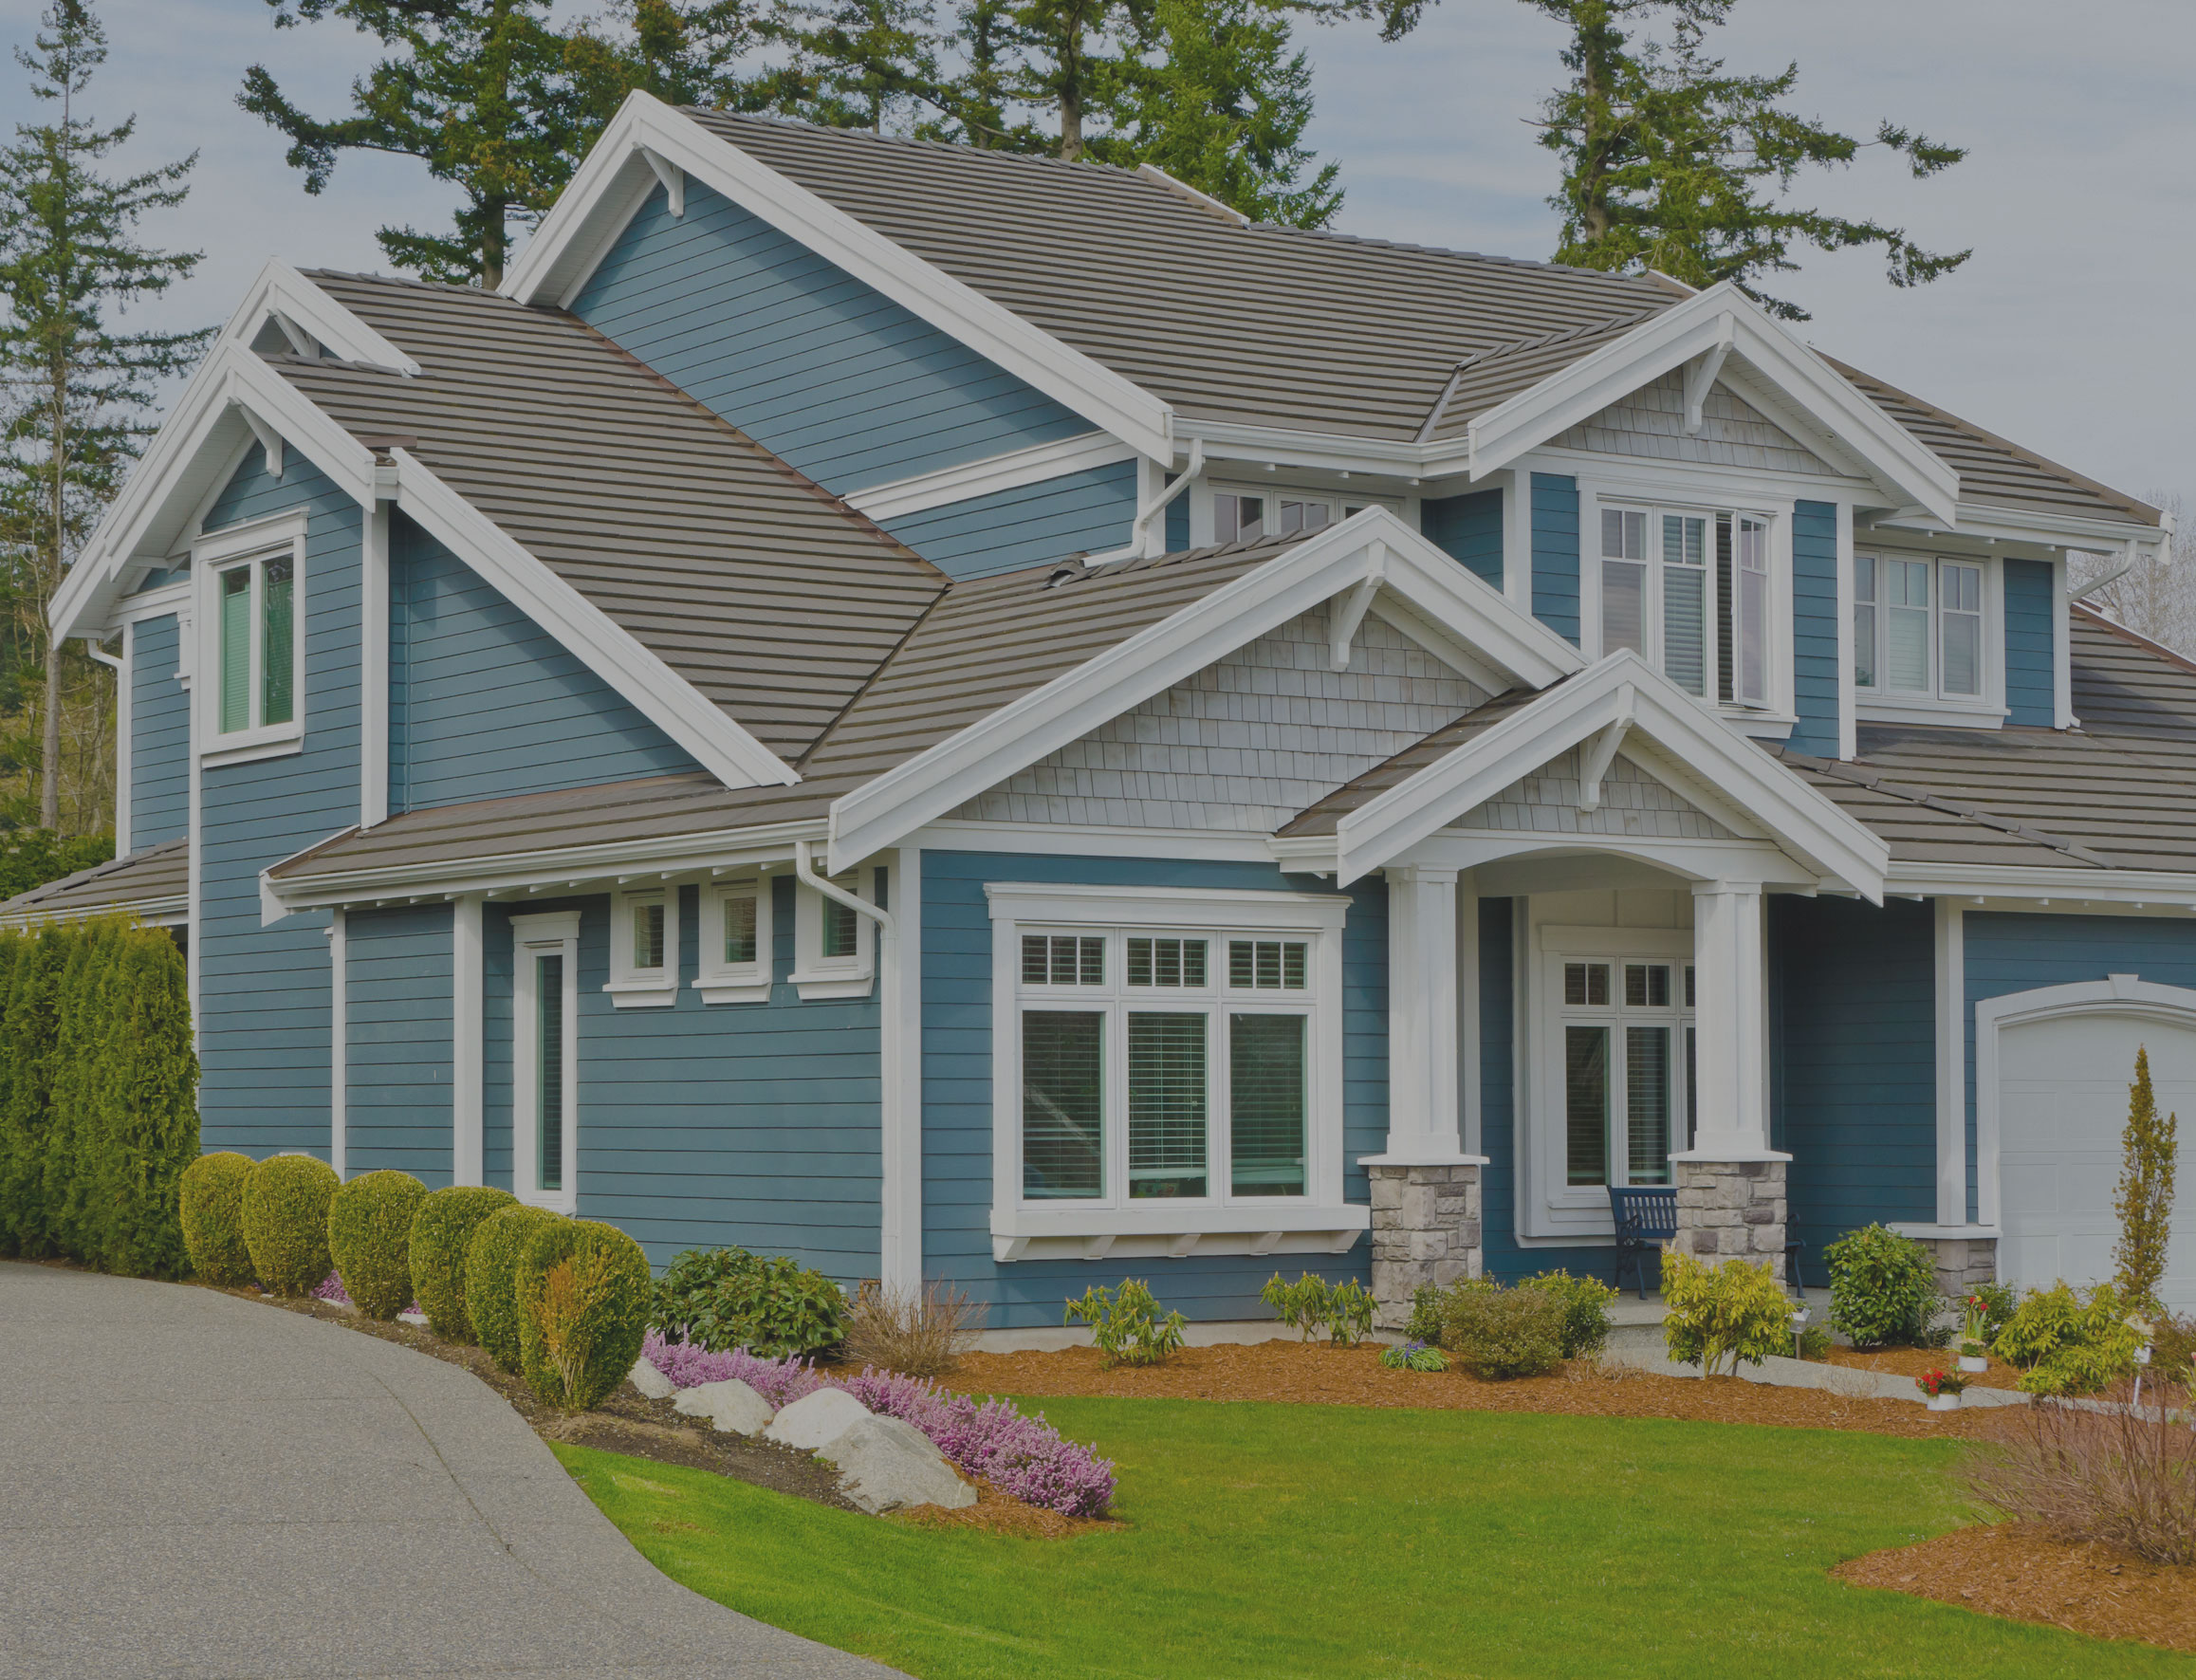 Welcome to Hometown | Hometown Exterior Designs - Portland, OR - Vancouver, WA